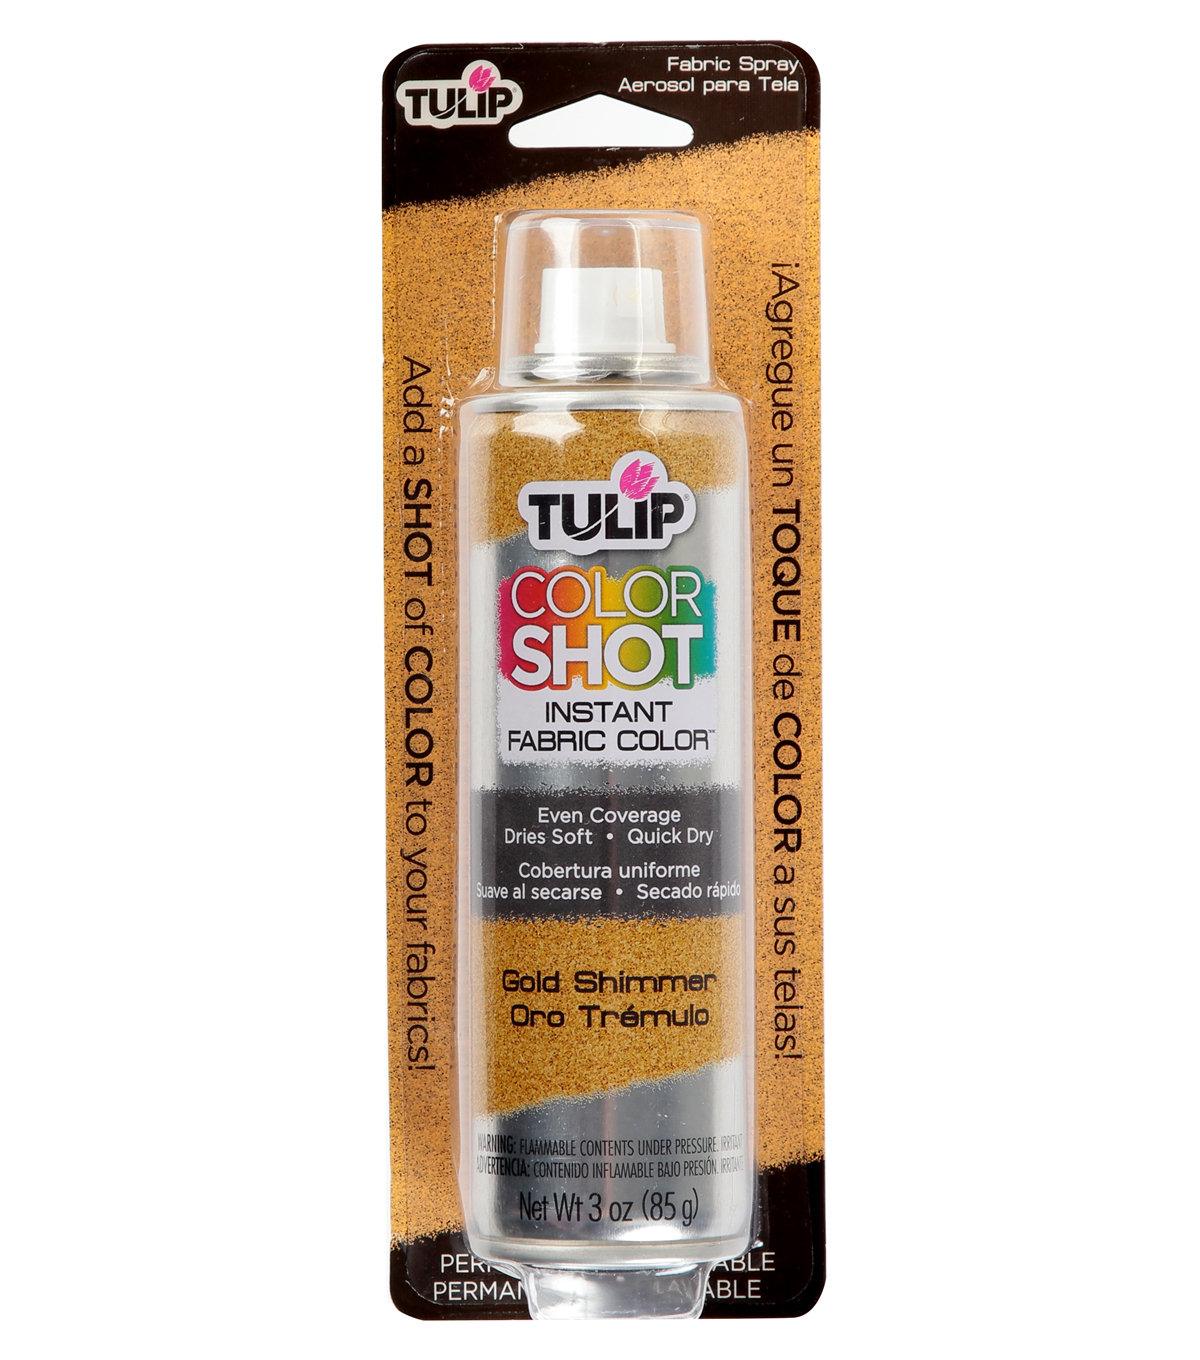 Tulip ColorShot Instant Fabric Color Spray 3oz, Gold Metallic